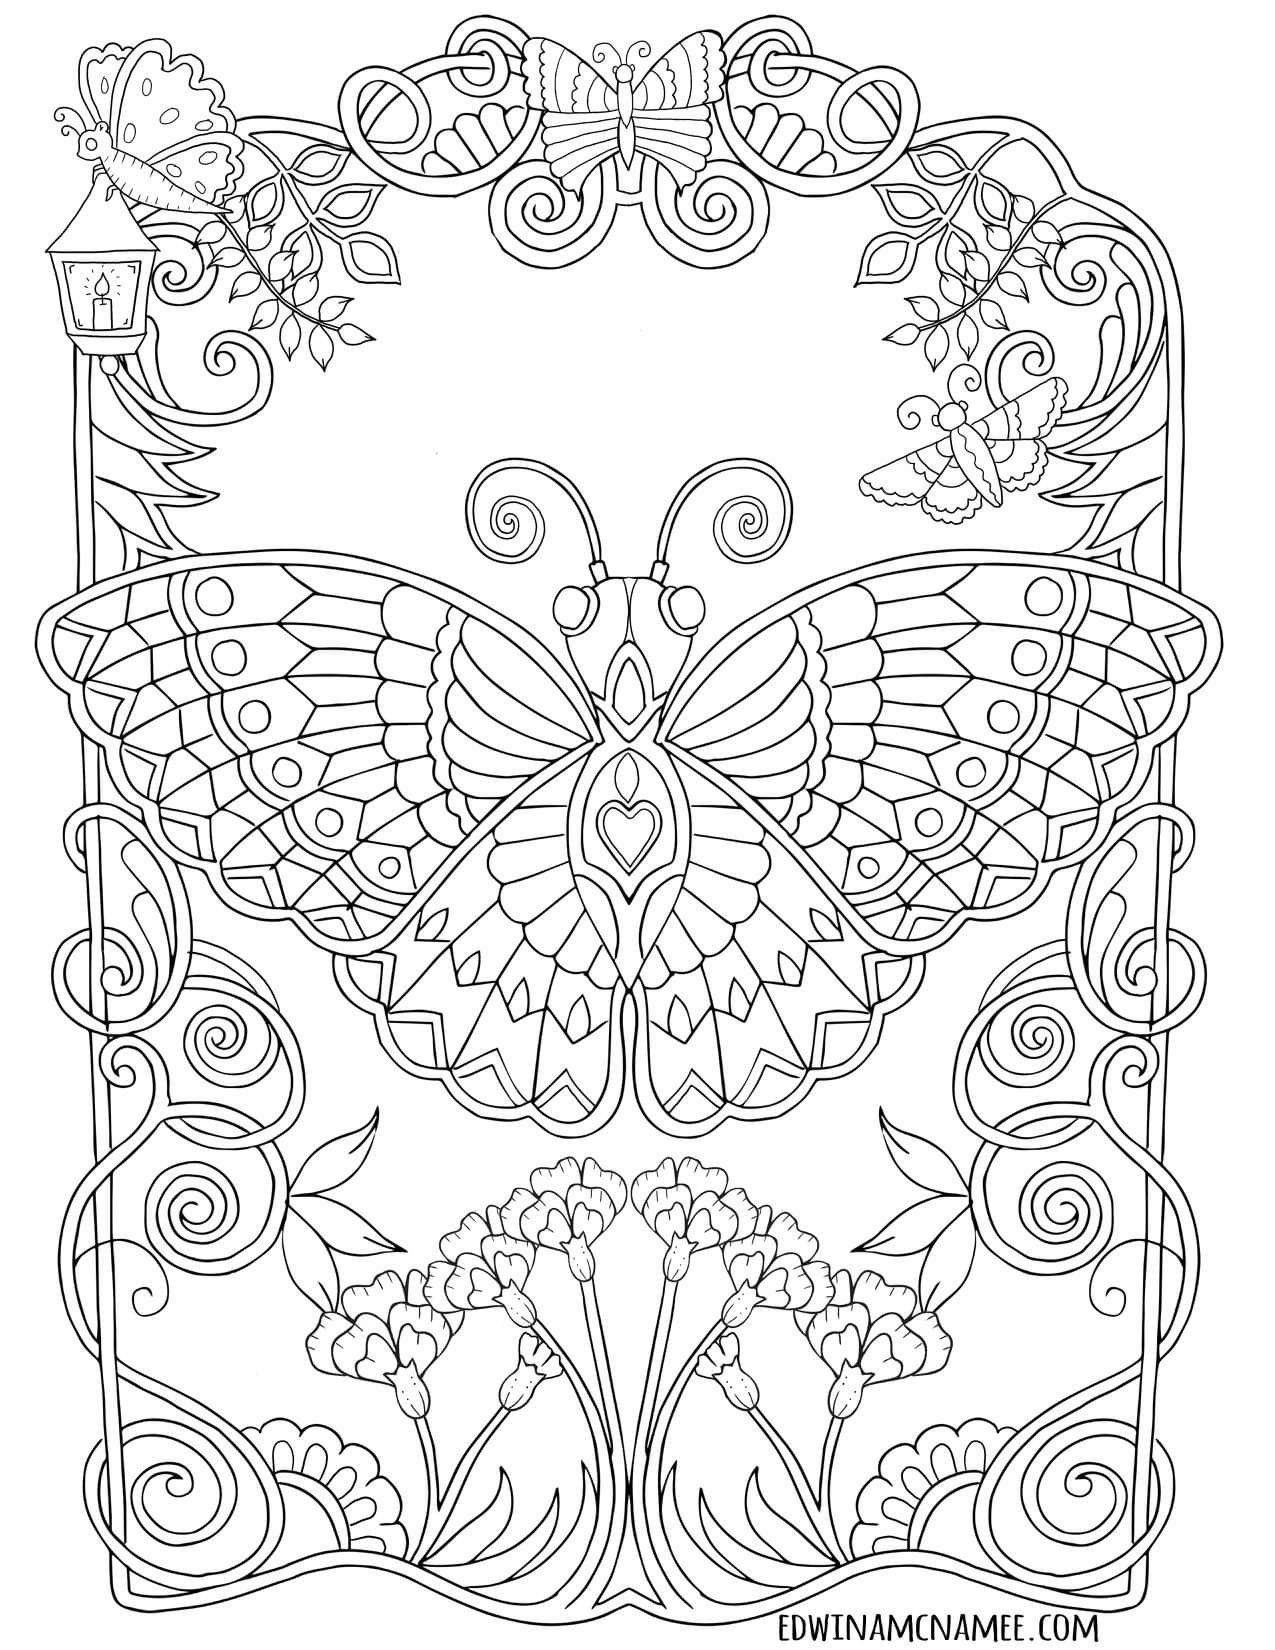 Pin By Gabbe Fernandes On Coloring Pages Love Coloring Pages Cute Coloring Pages Butterfly Coloring Page [ 1650 x 1275 Pixel ]